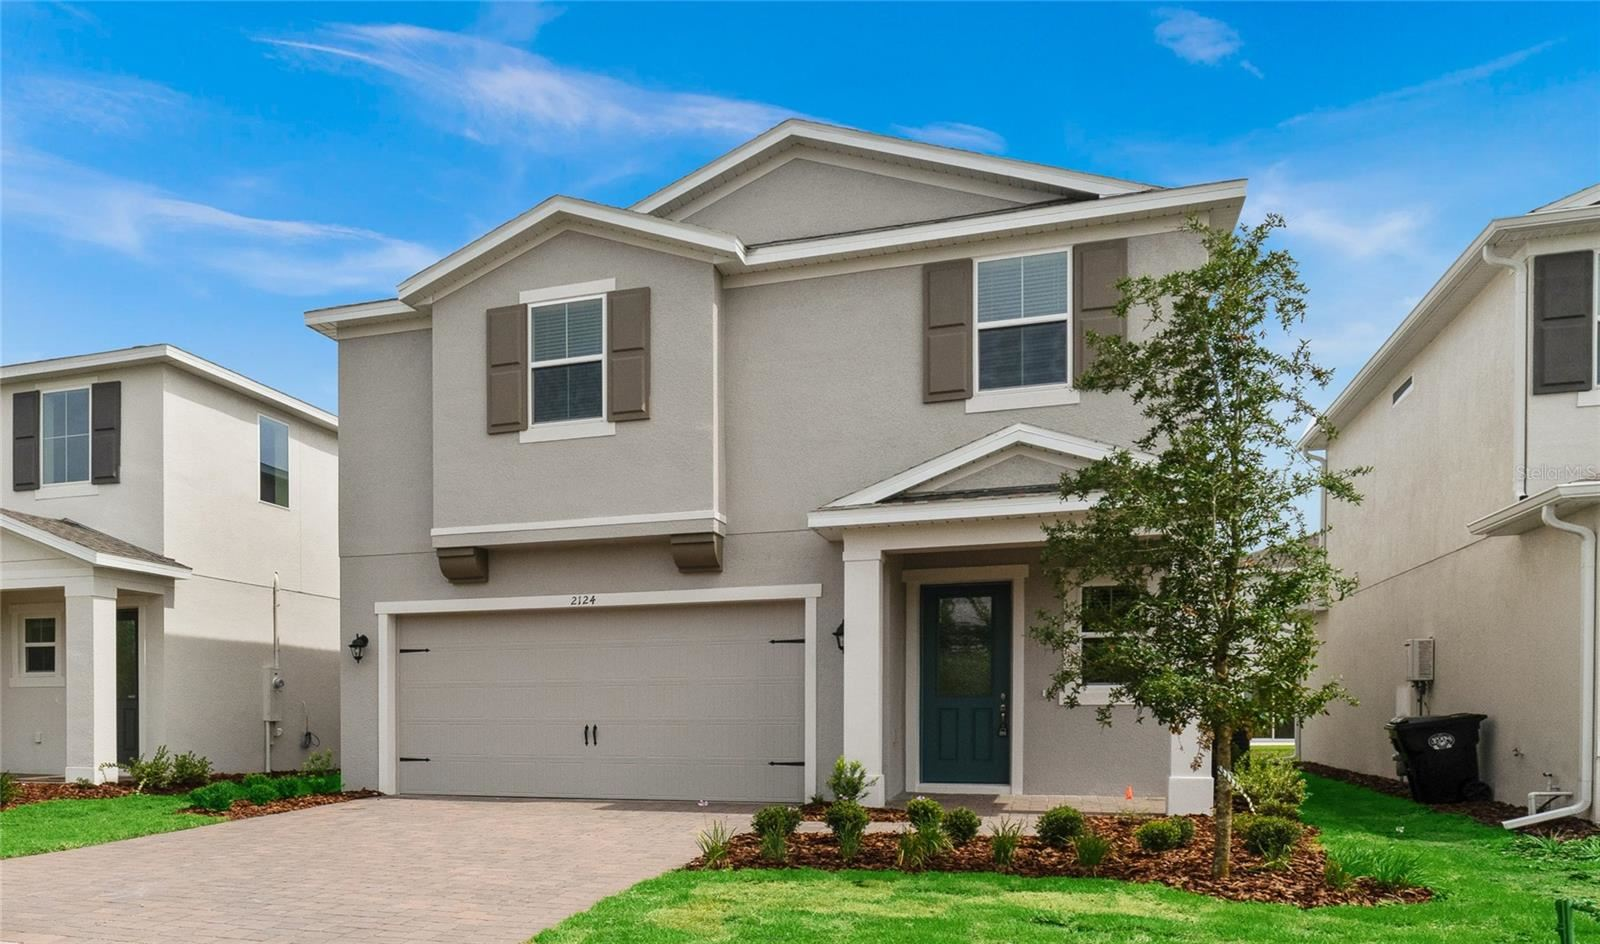 2124 OSPREY POINT COURT #49, Apopka, FL 32712 - MLS#: O5926923